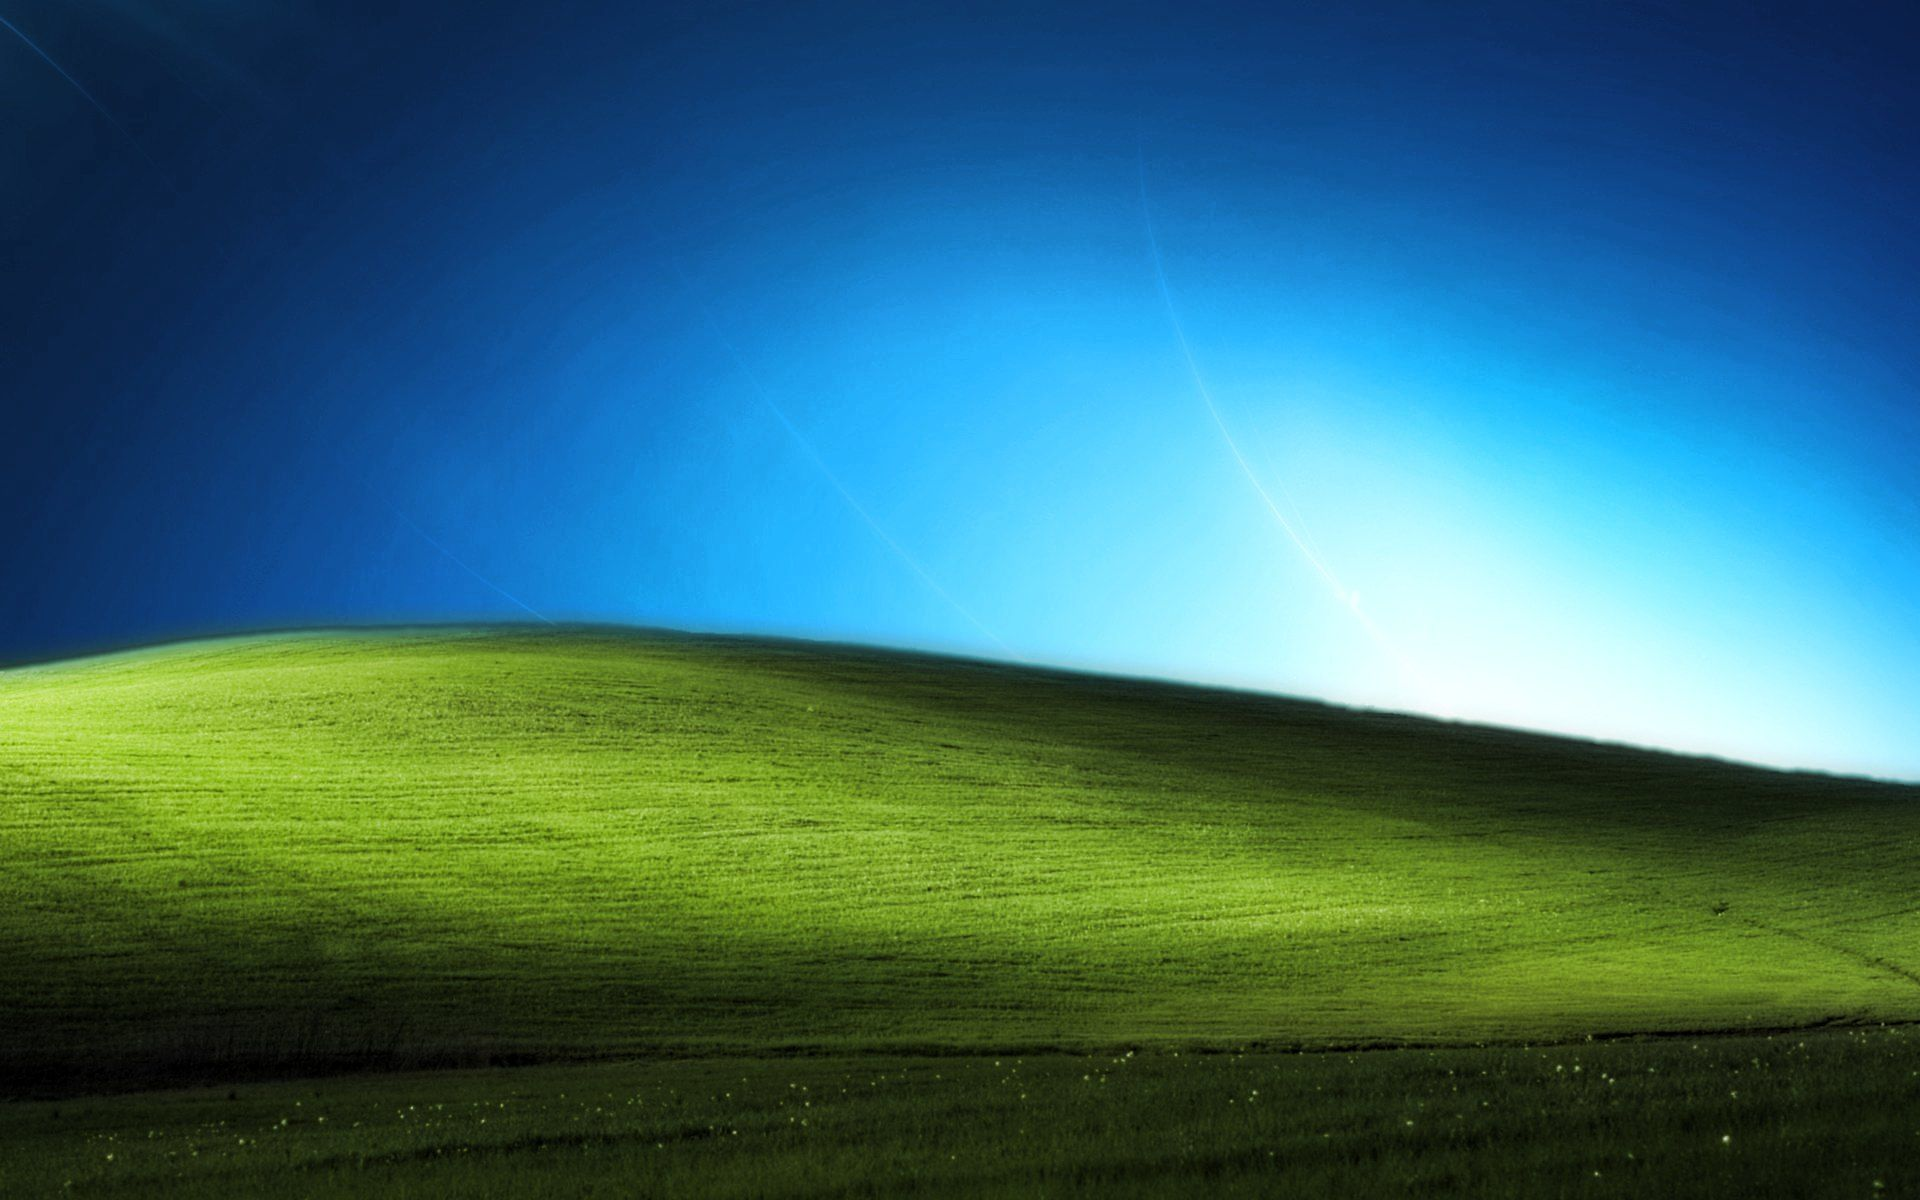 Microsoft Windows Xp Wallpapers Top Free Microsoft Windows Xp Backgrounds Wallpaperaccess